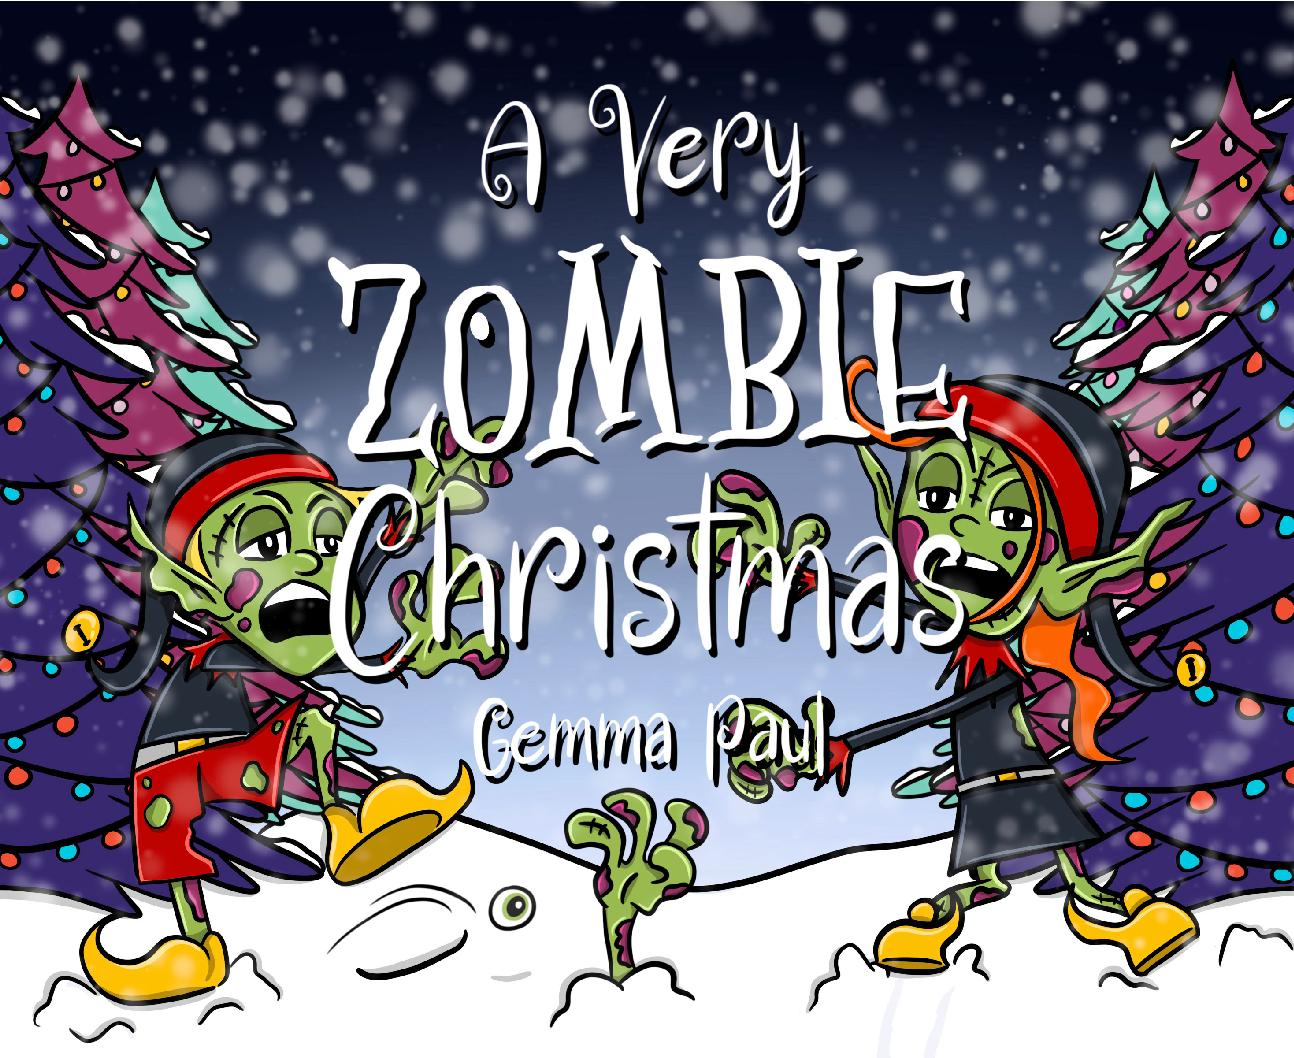 a-very-zombie-christmas-front-page-page-001